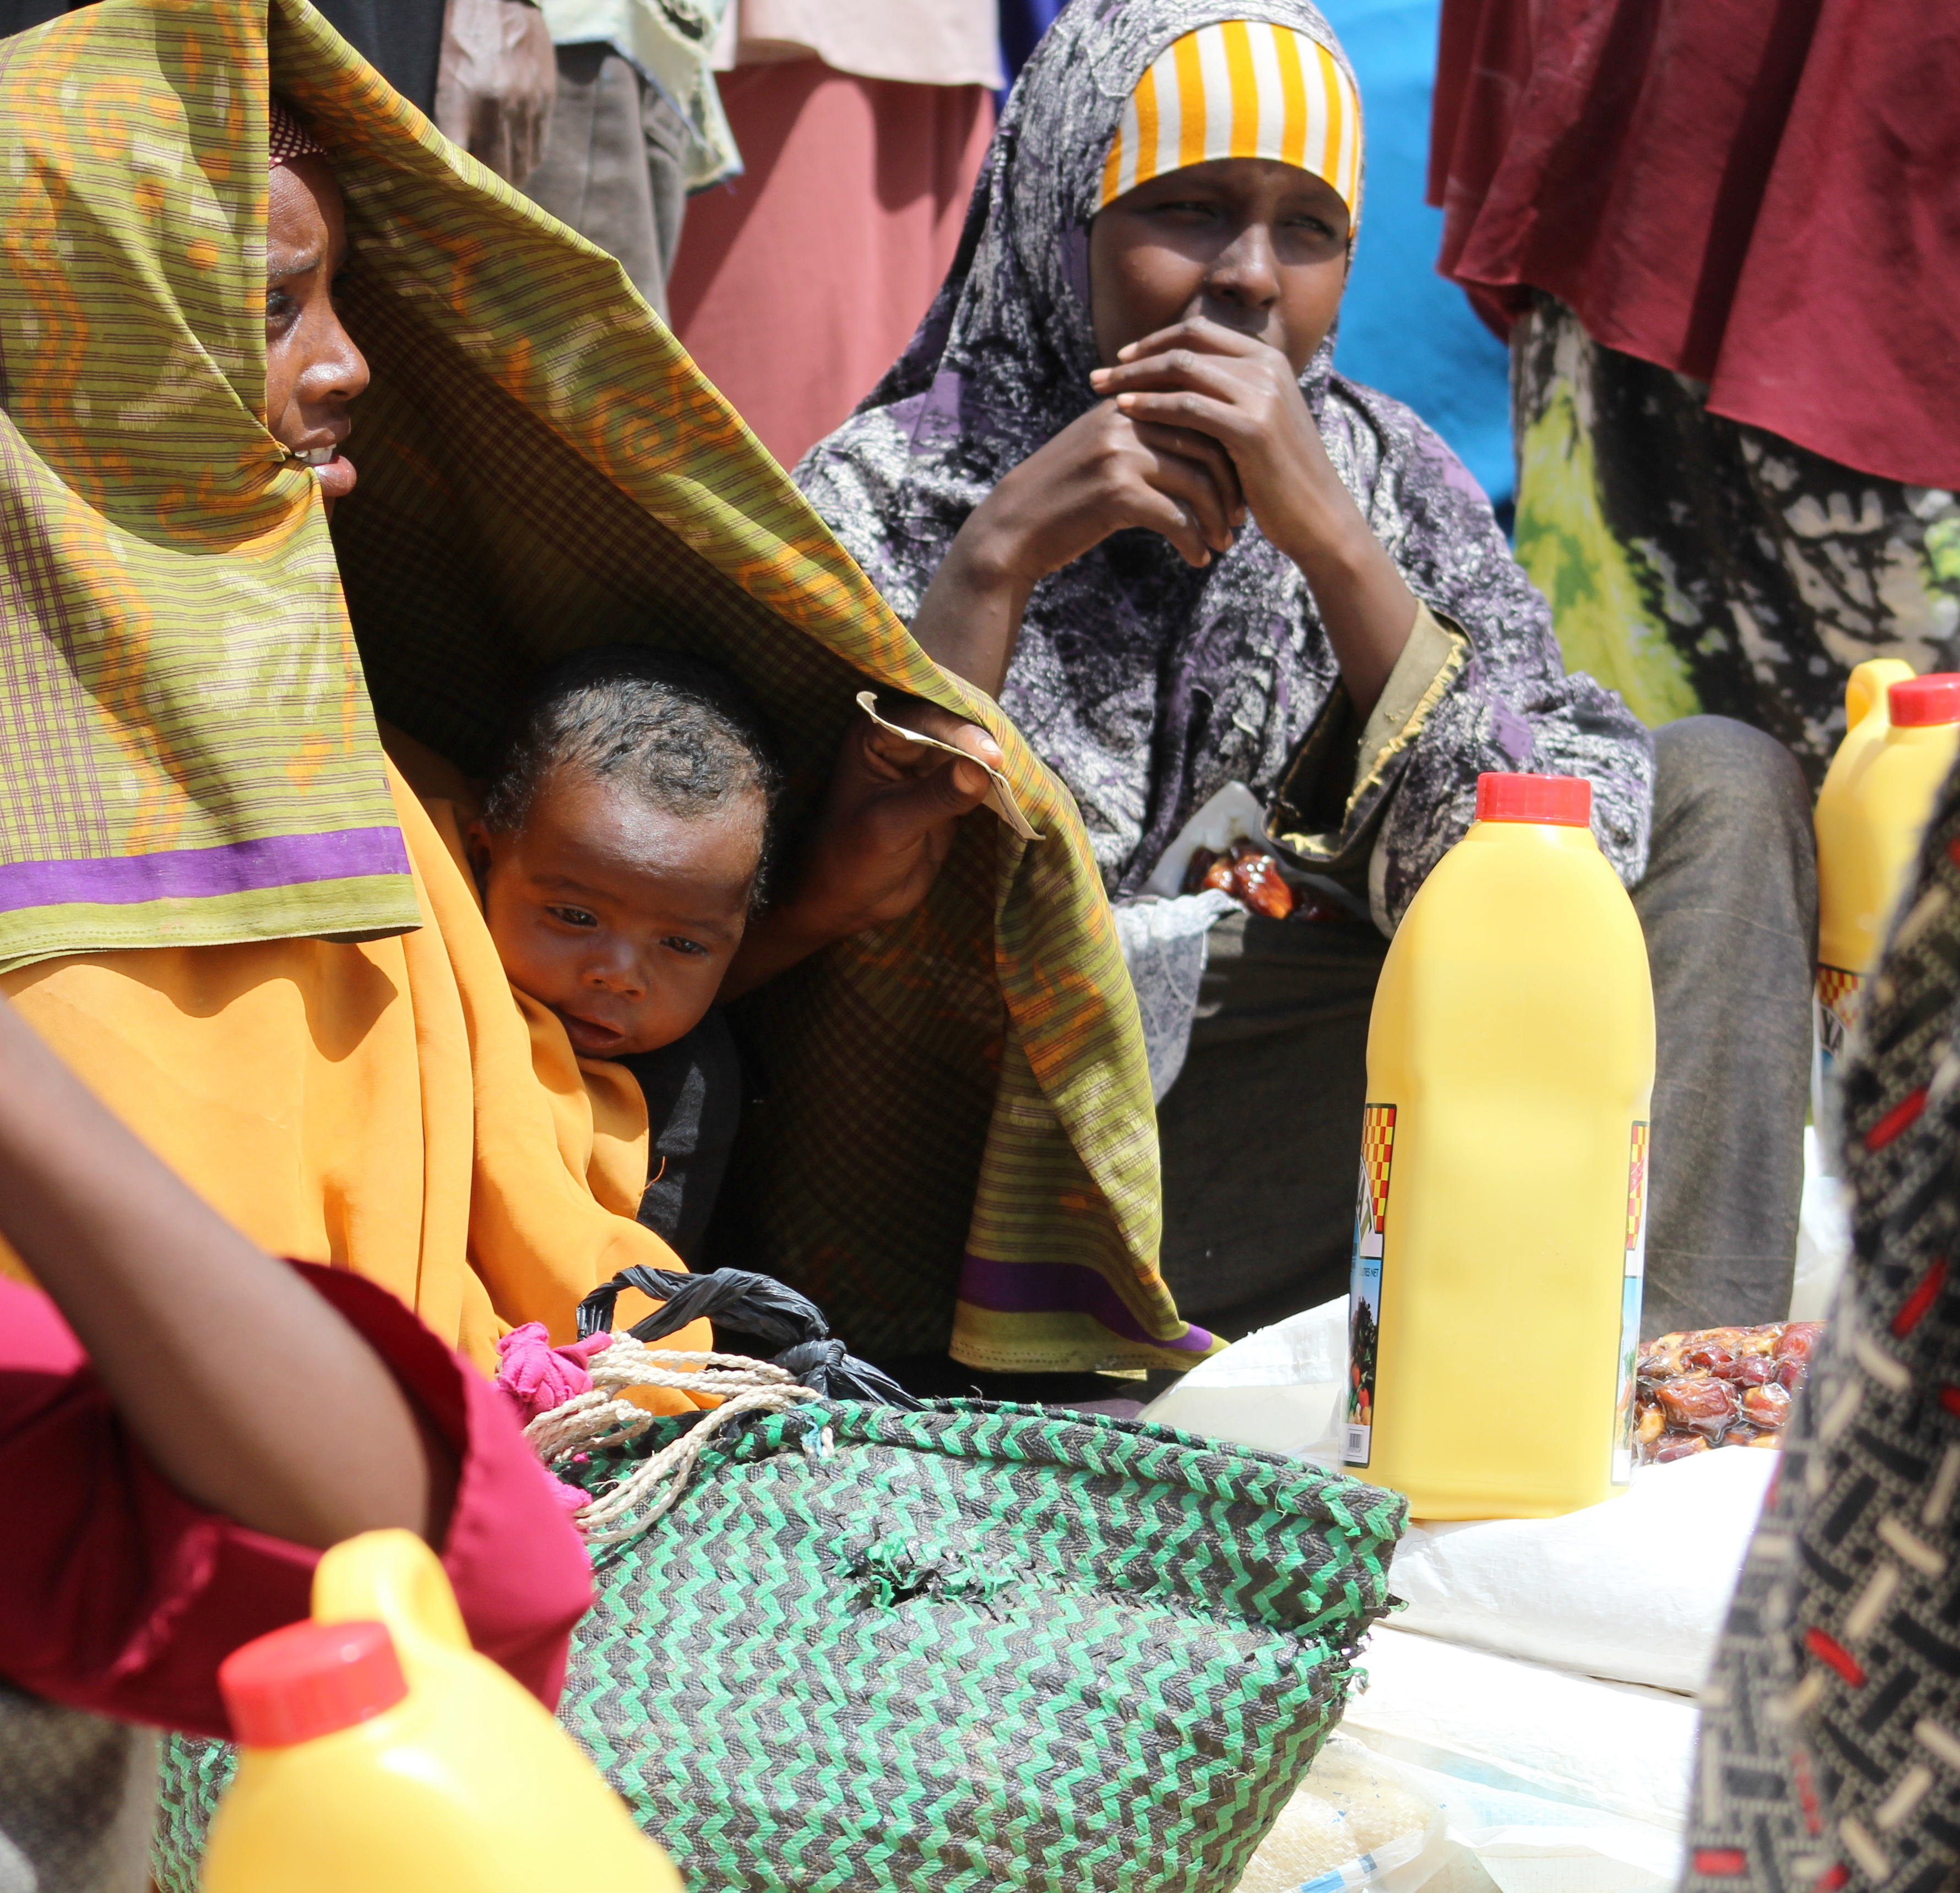 Somalia: You can make a difference